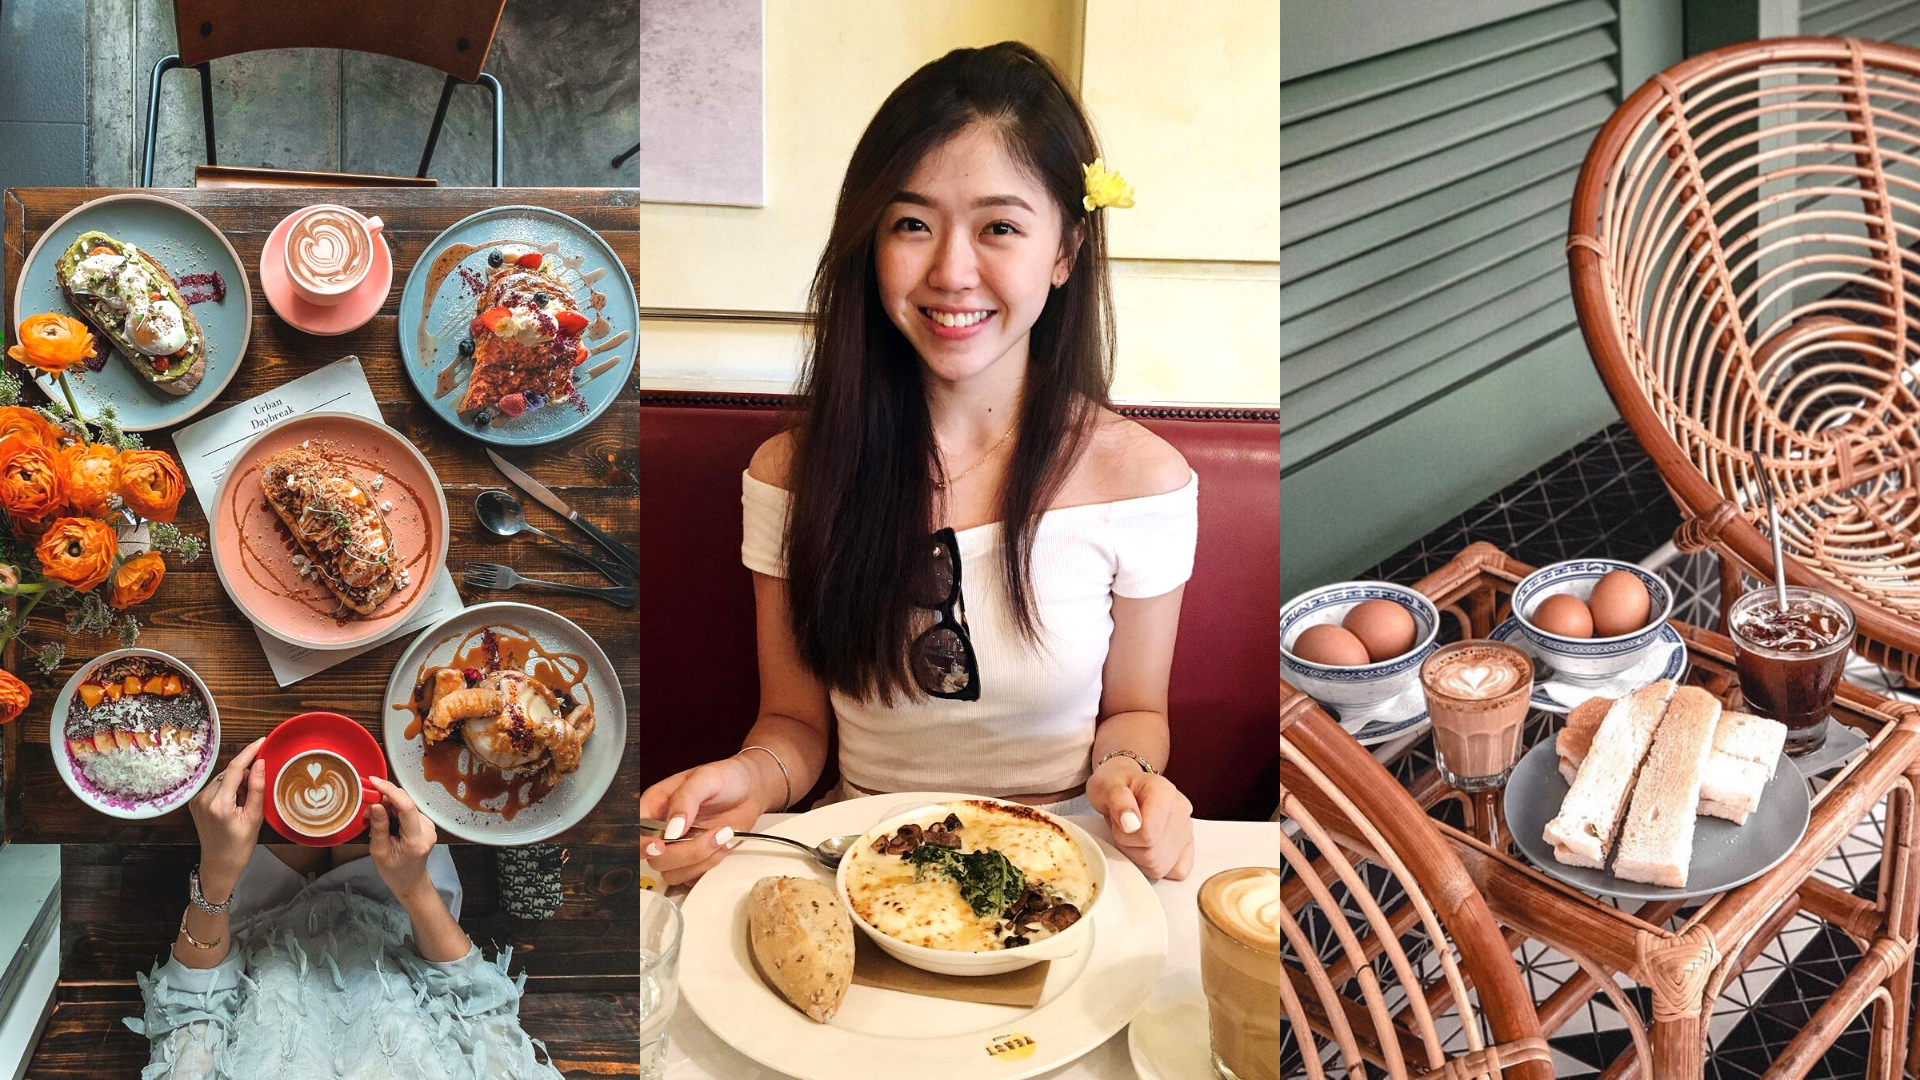 Girls' Blogs About Foods